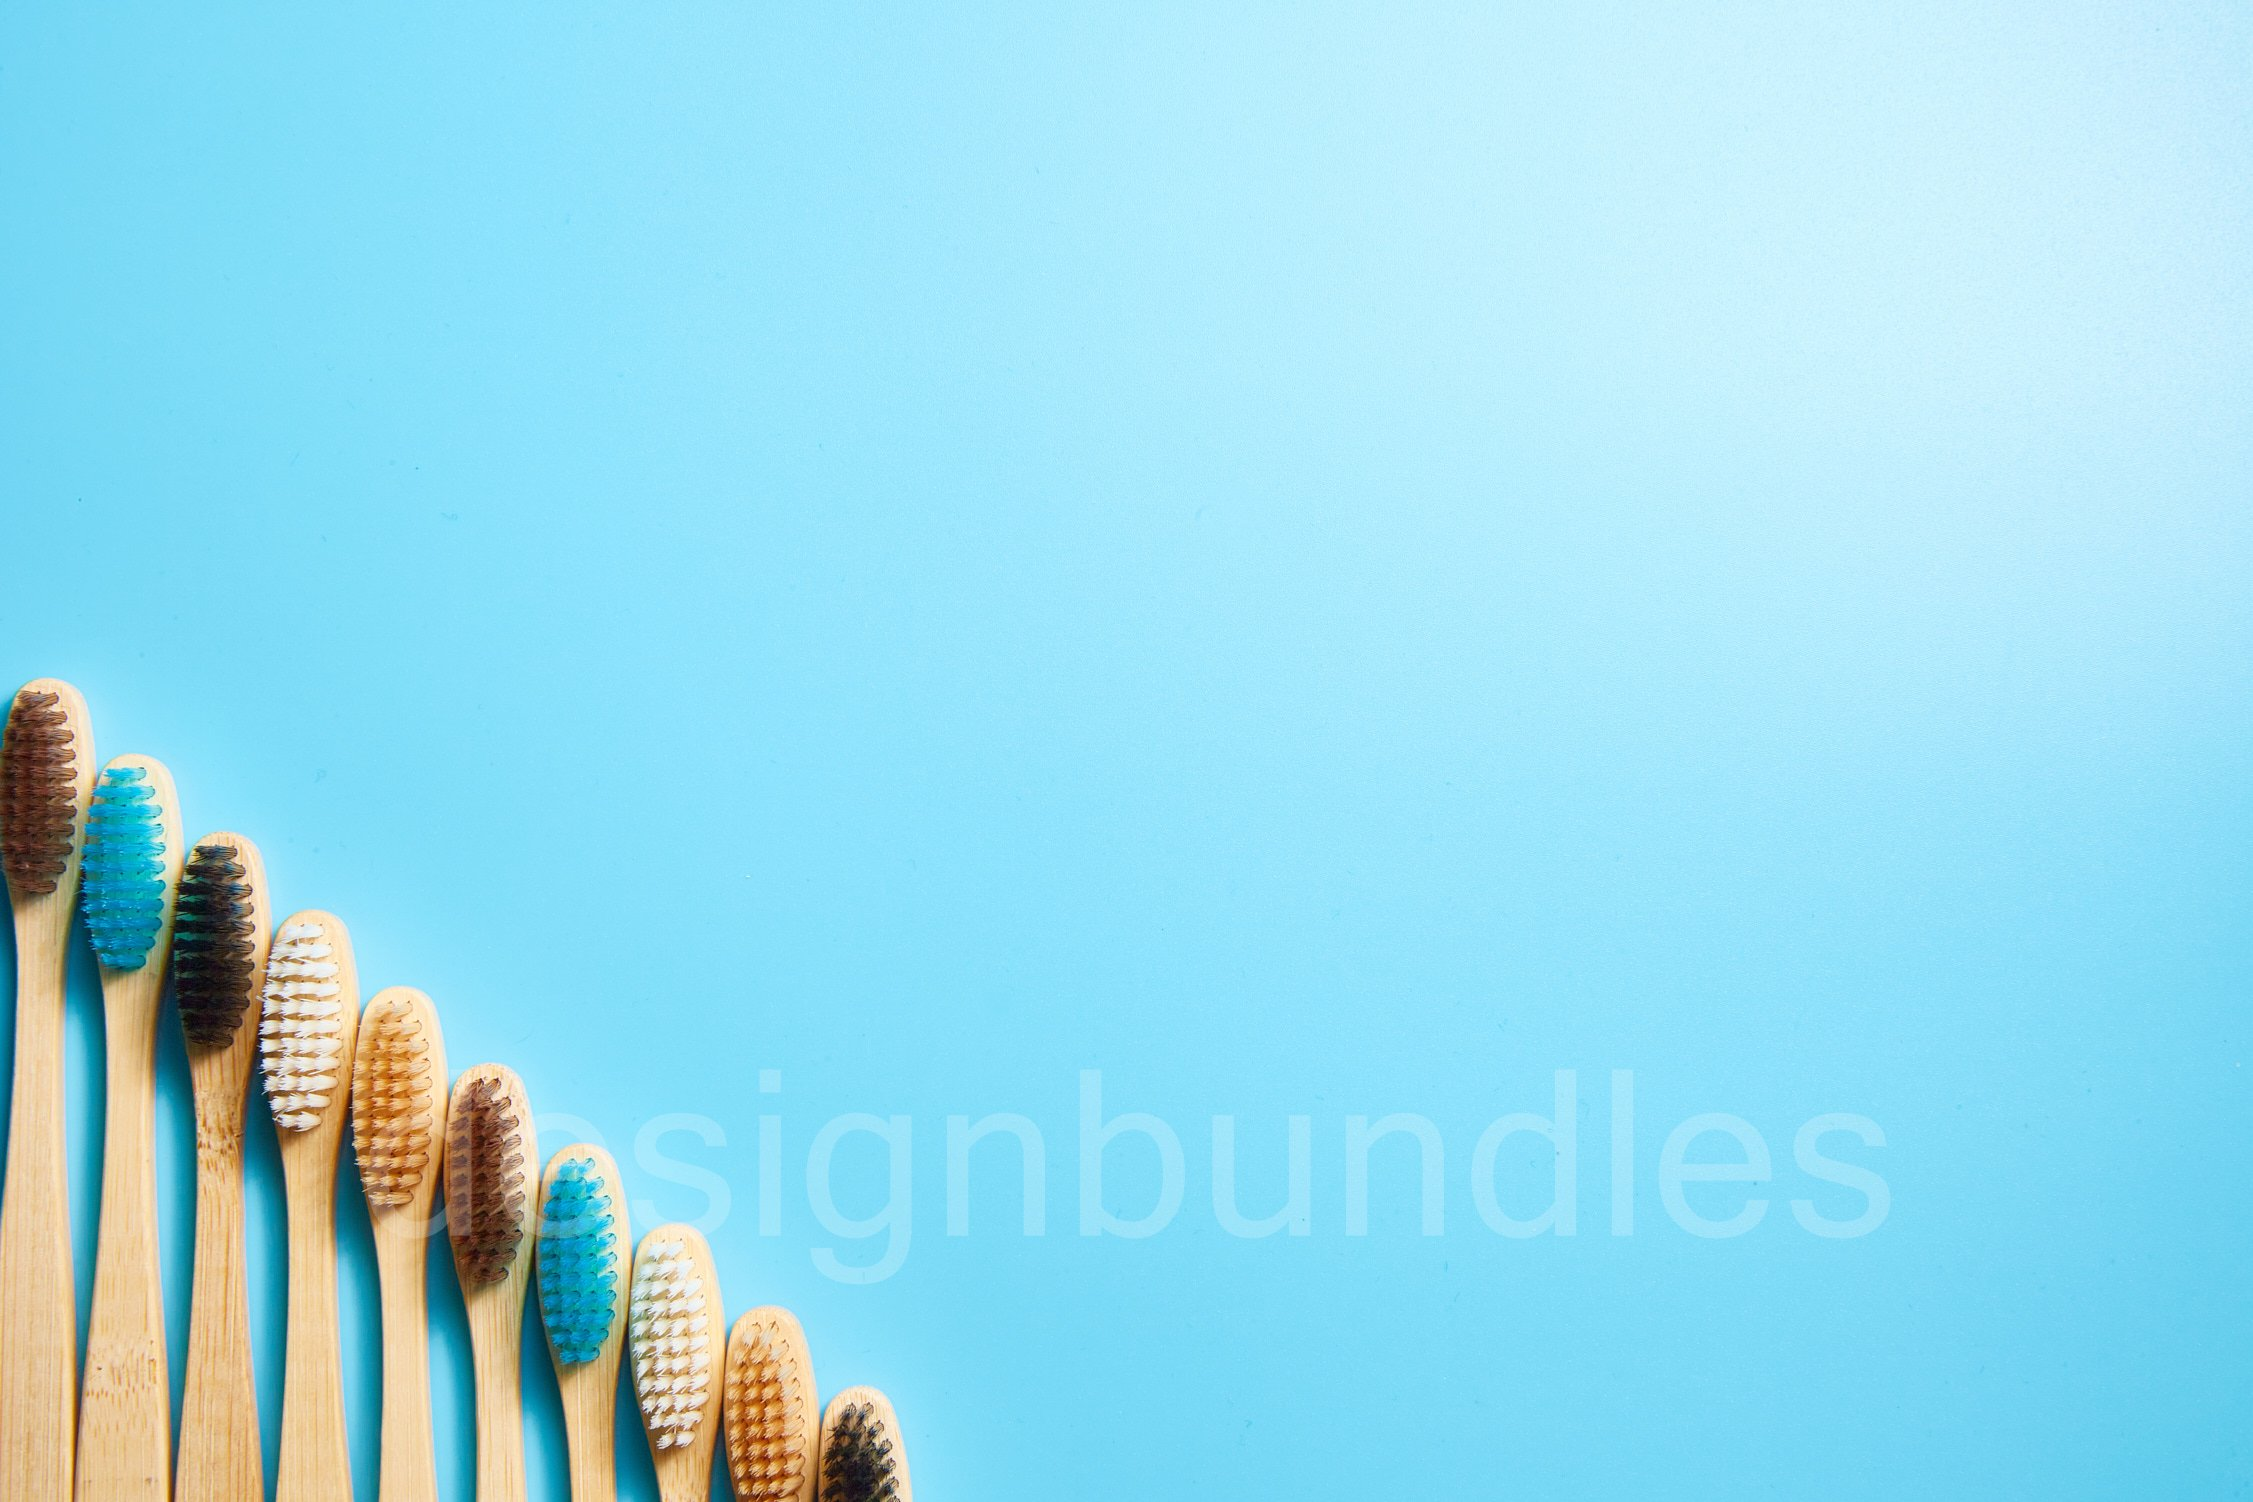 Multi-colored wooden toothbrushes. Place for text example image 1